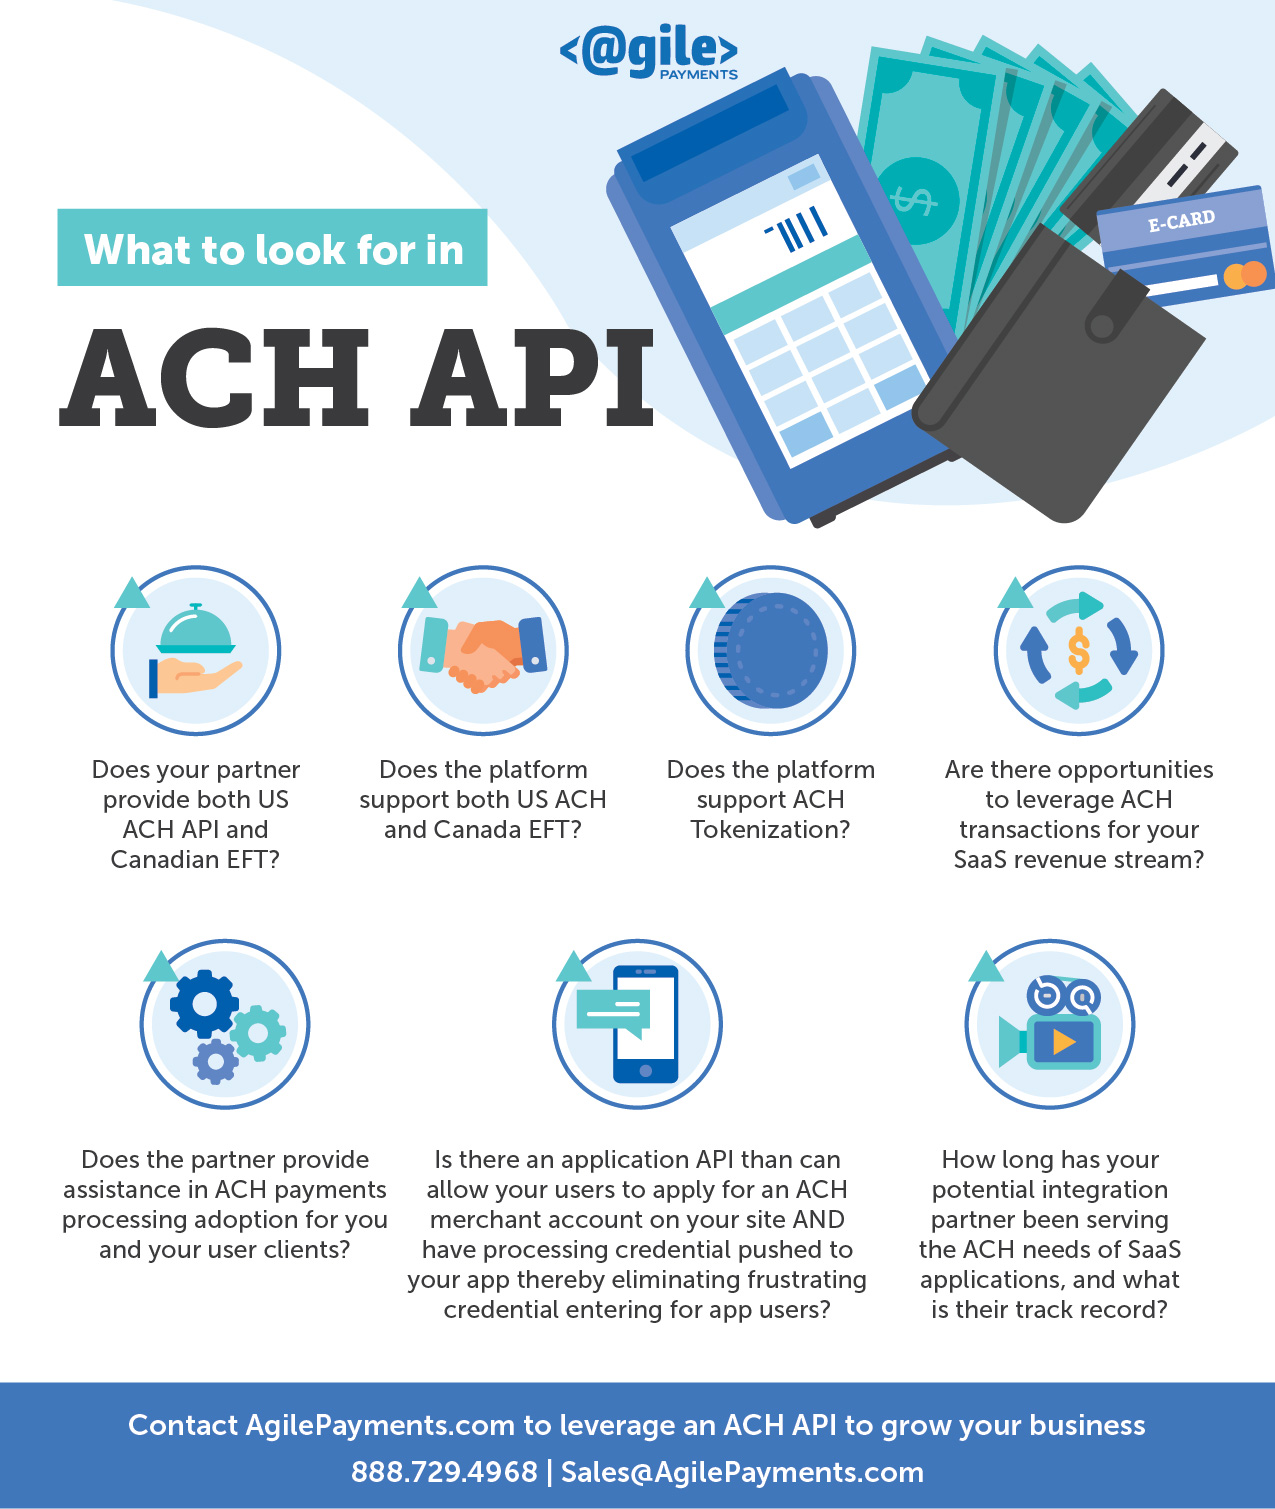 How an ACH API Can Help Grow Your Platform (2019 Guide